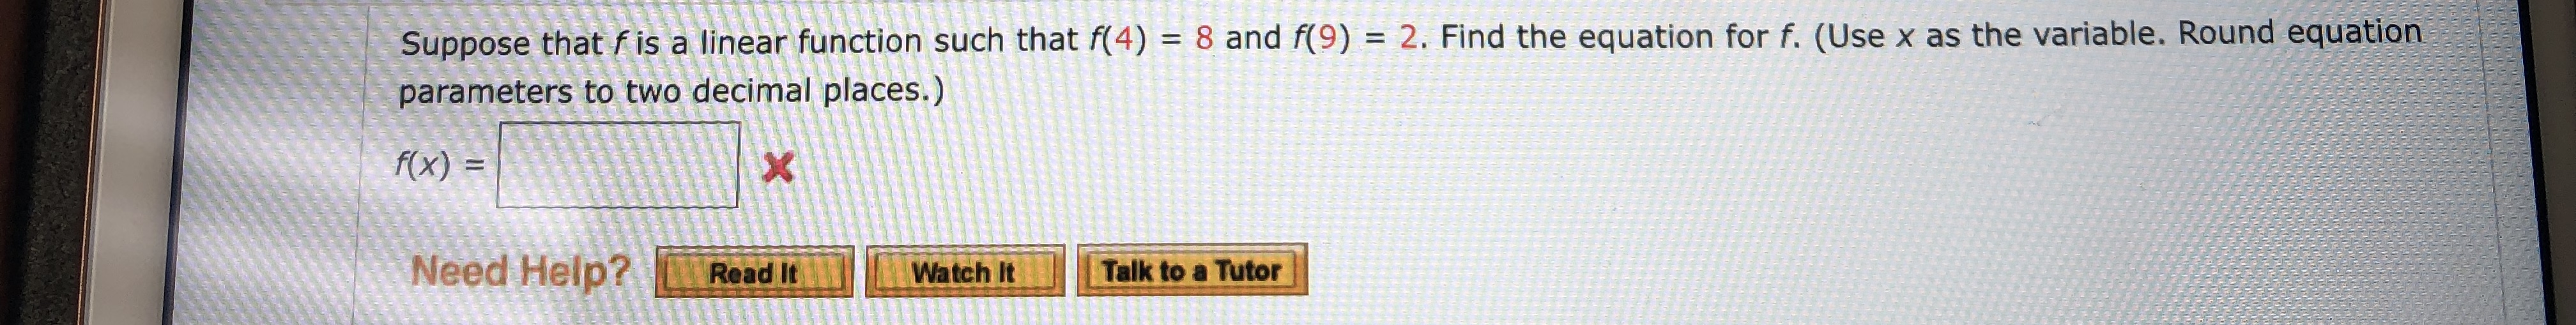 Suppose that f is a linear function such that f(4) = 8 and f(9) = 2. Find the equation for f. (Use x as the variable. Round equation parameters to two decimal places.) f(x) = X Need Help? Talk to a Tutor Read It Watch It